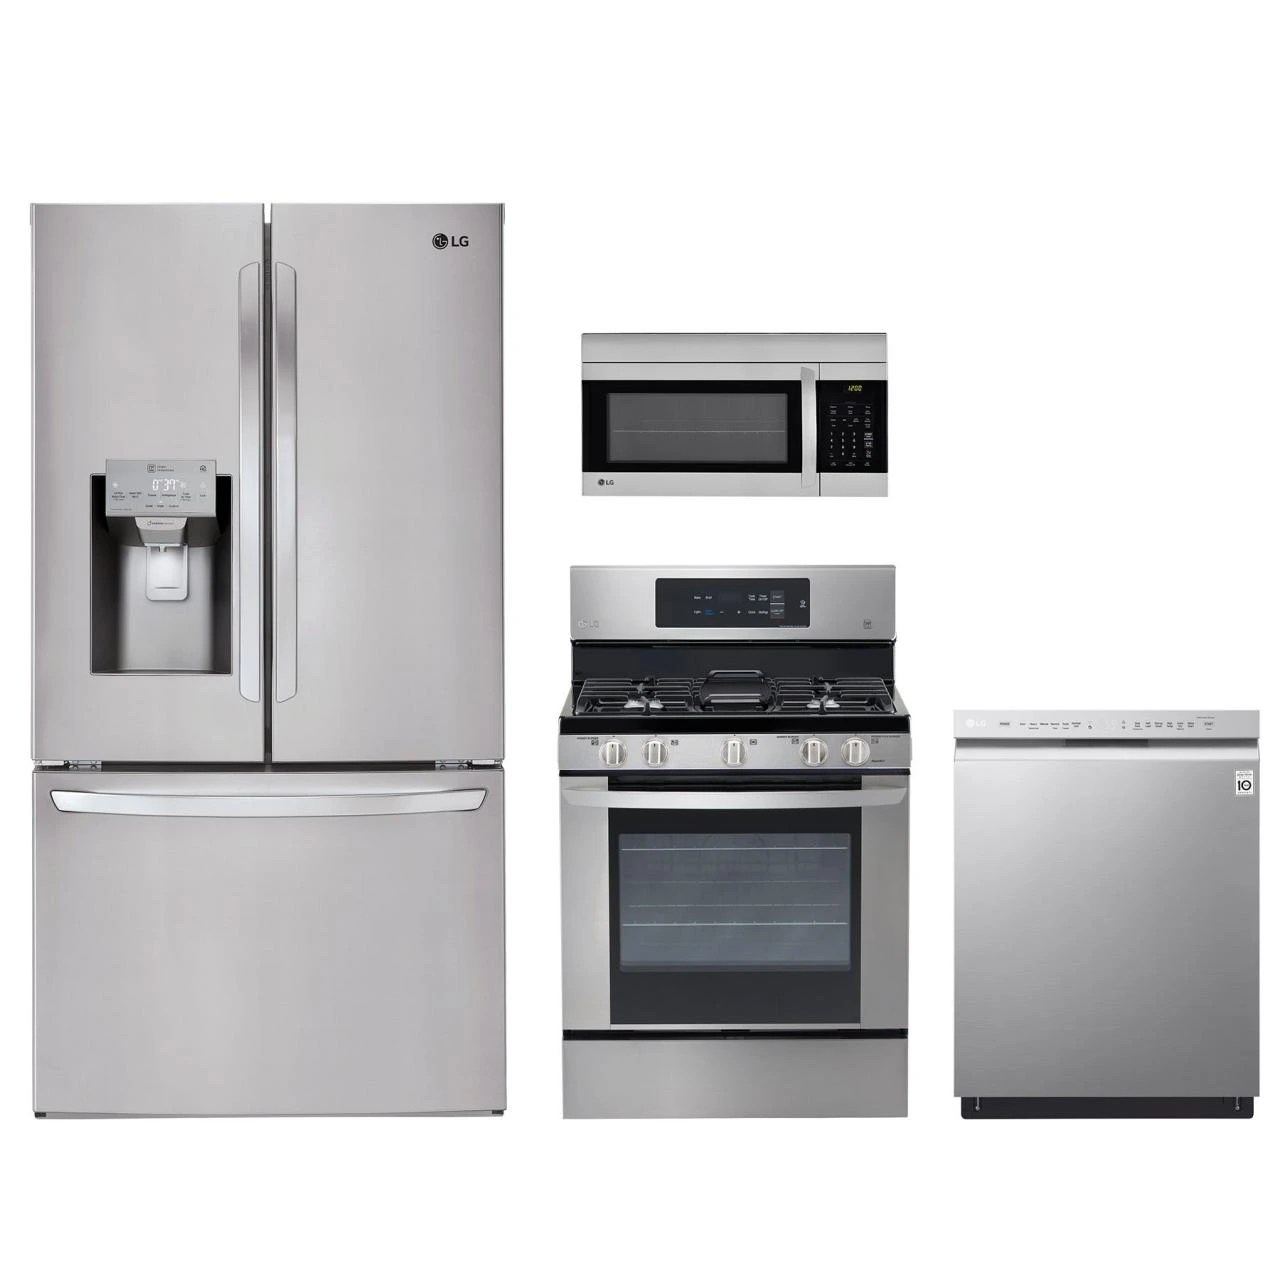 4 piece stainless steel kitchen package square table lg lgkitlmv1762st home